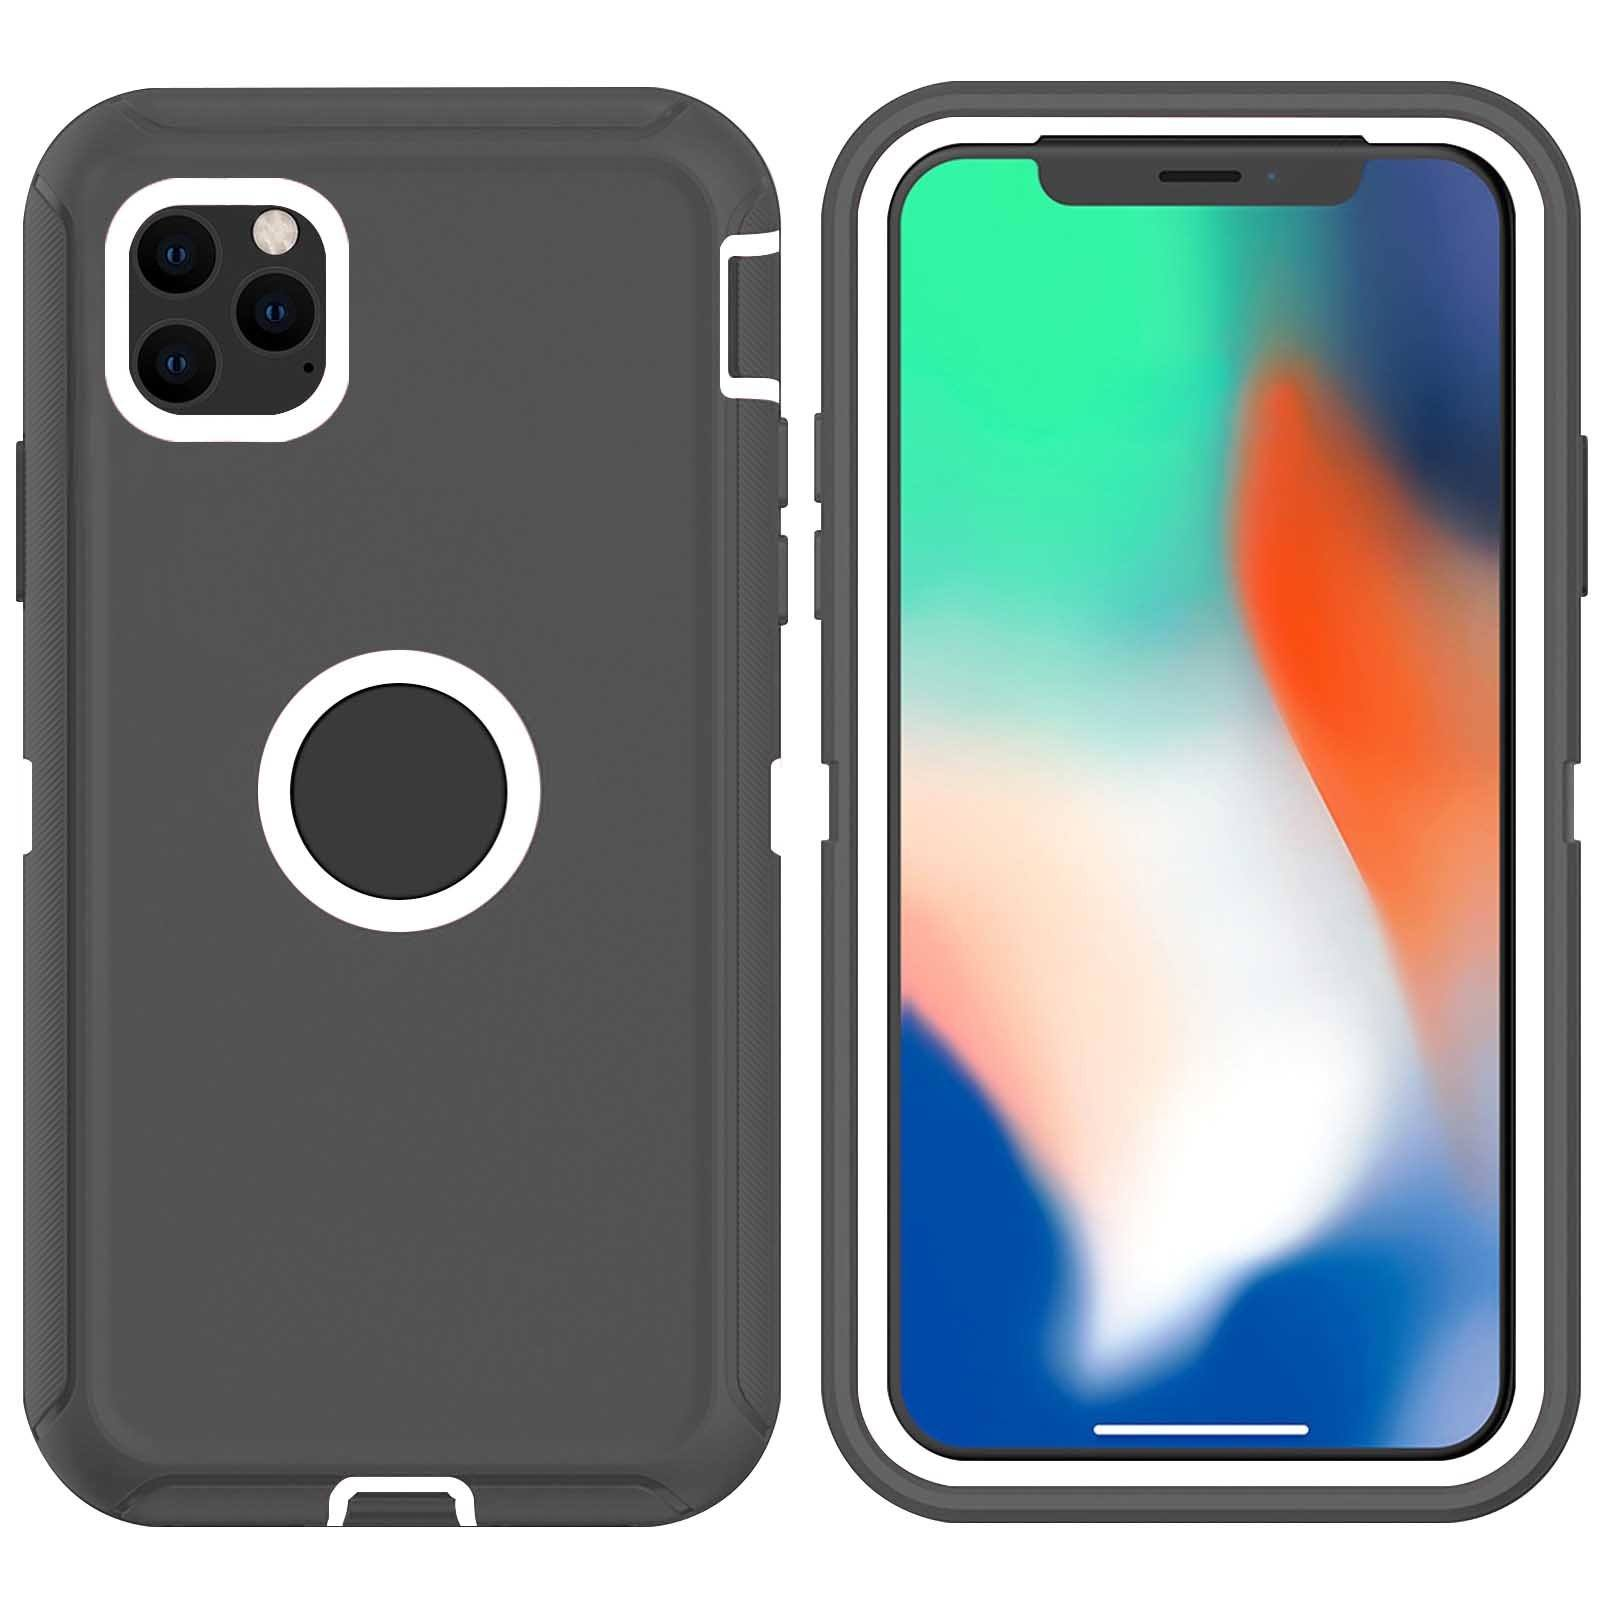 DualPro Protector Case for iPhone 11 Pro - Grey & White